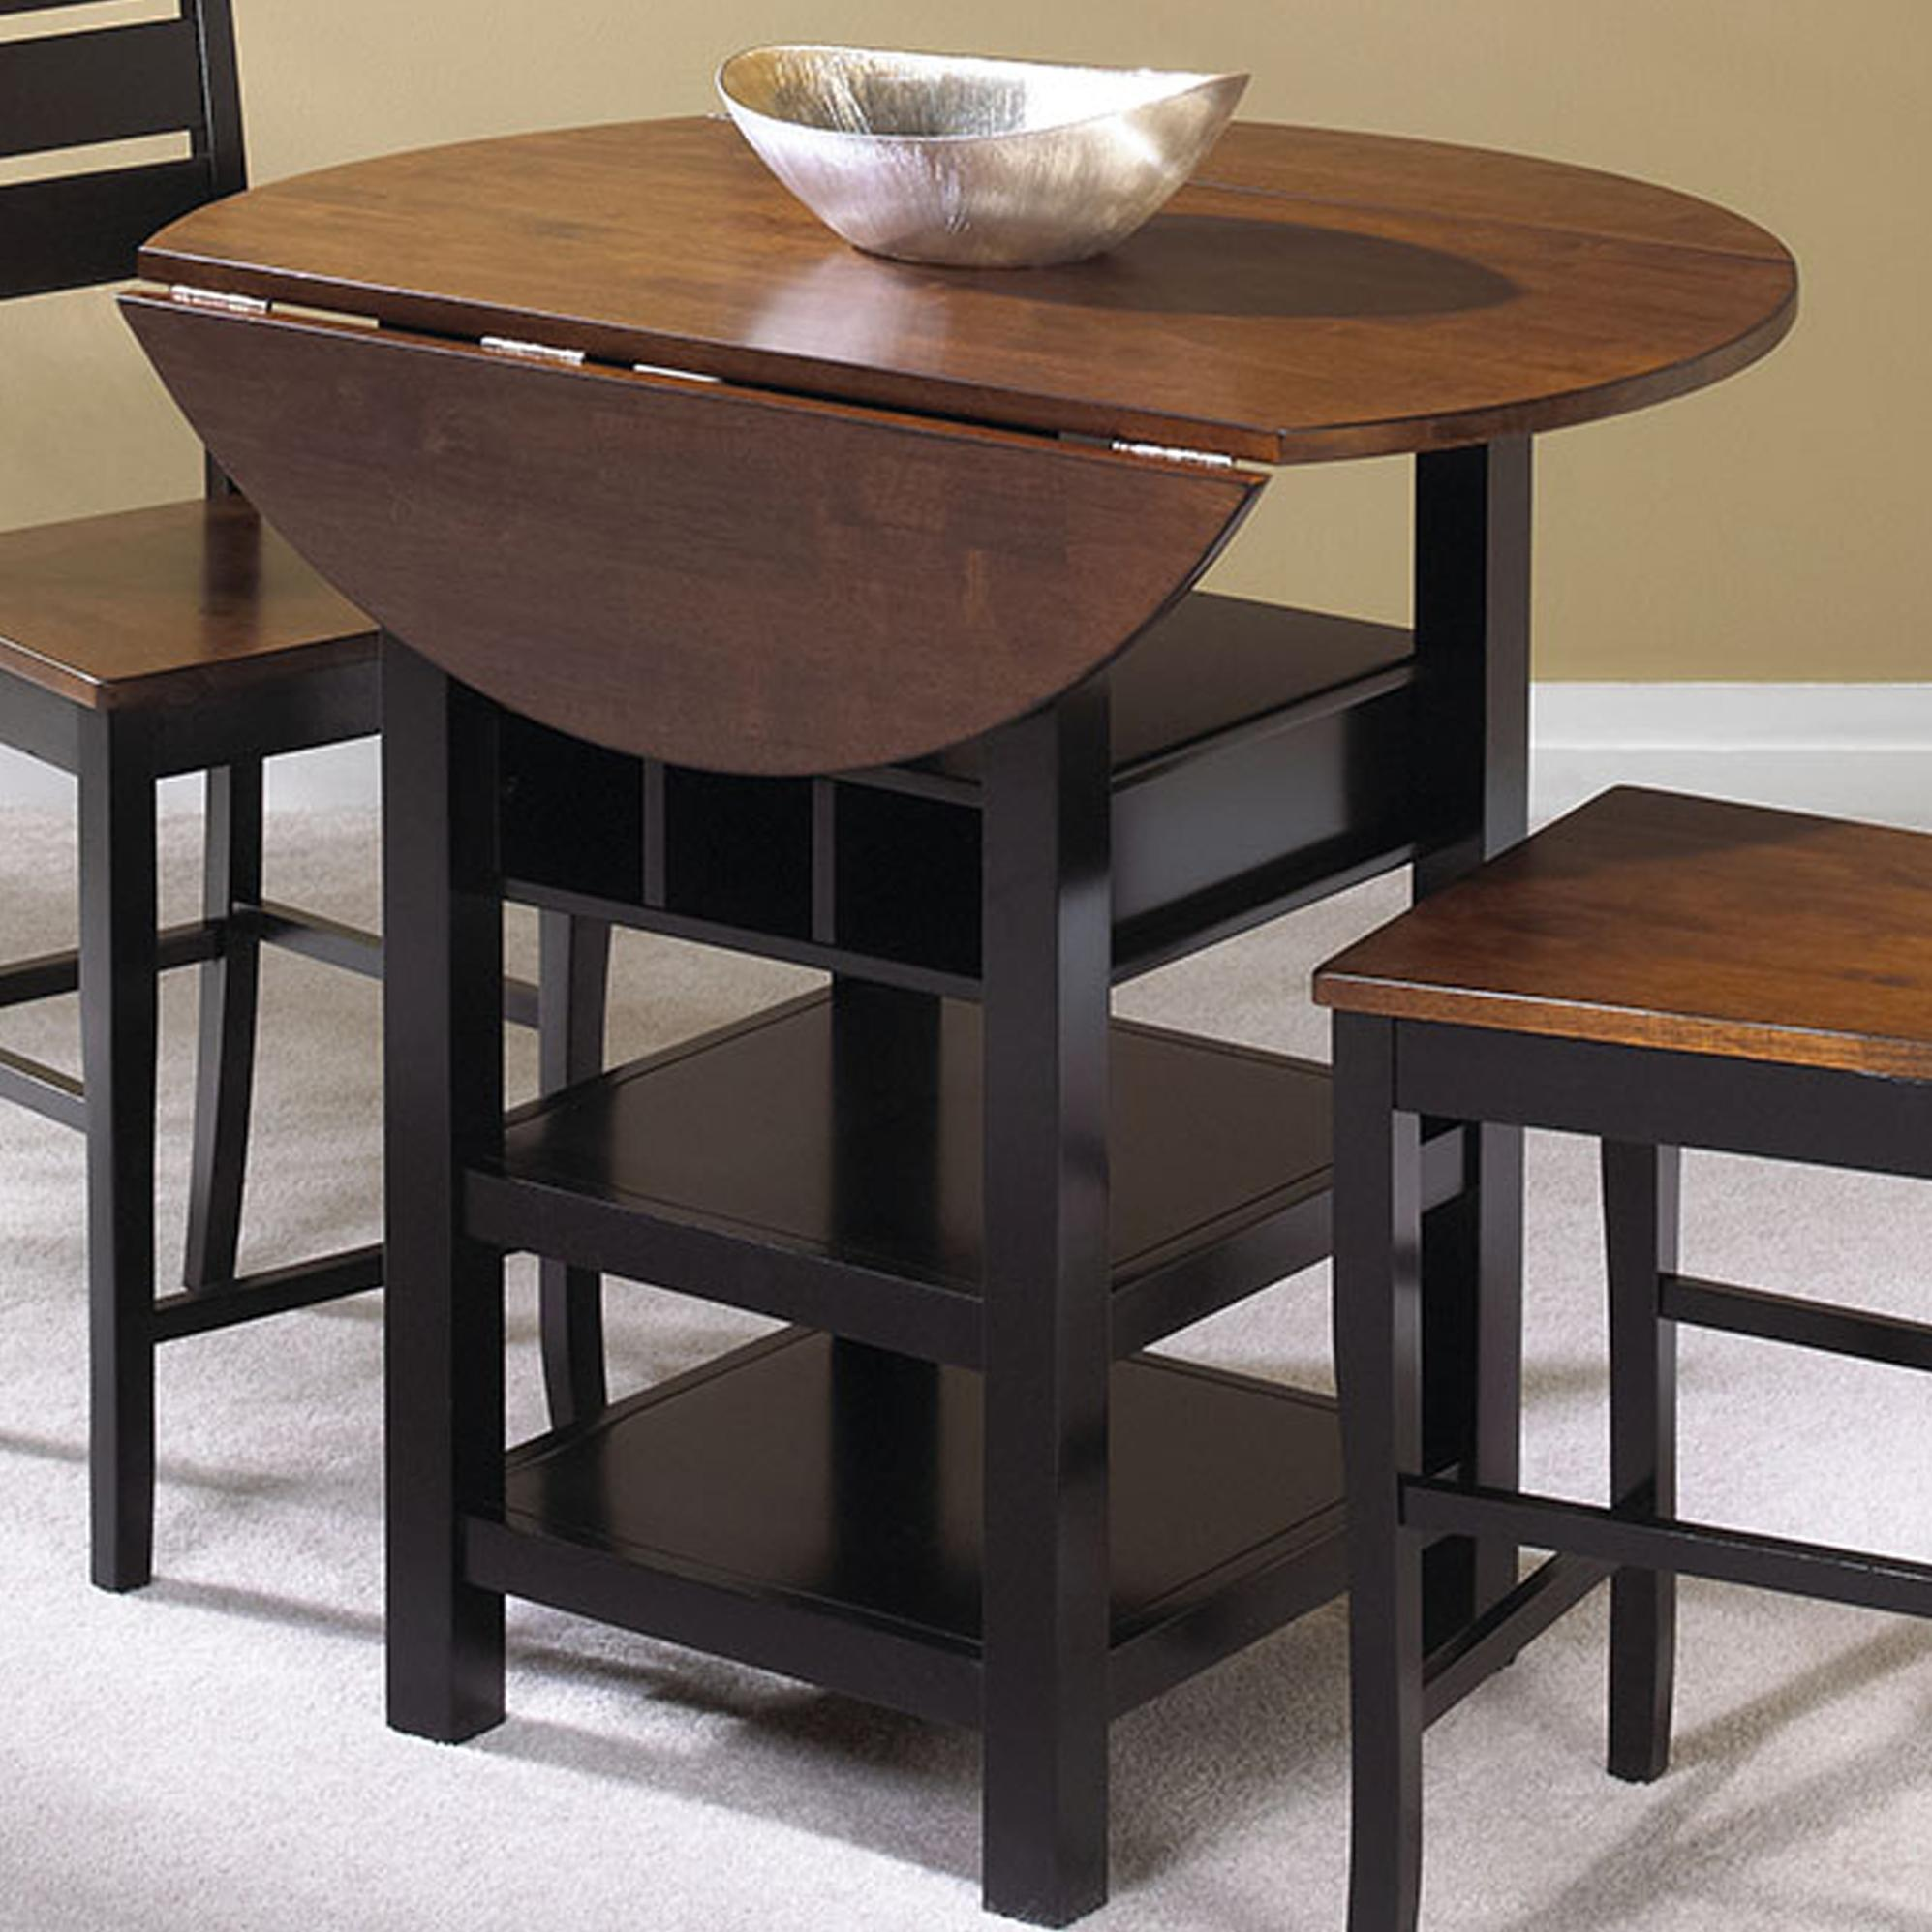 Quincy Drop Leaf Counter Height Table by Cramco, Inc at Value City Furniture